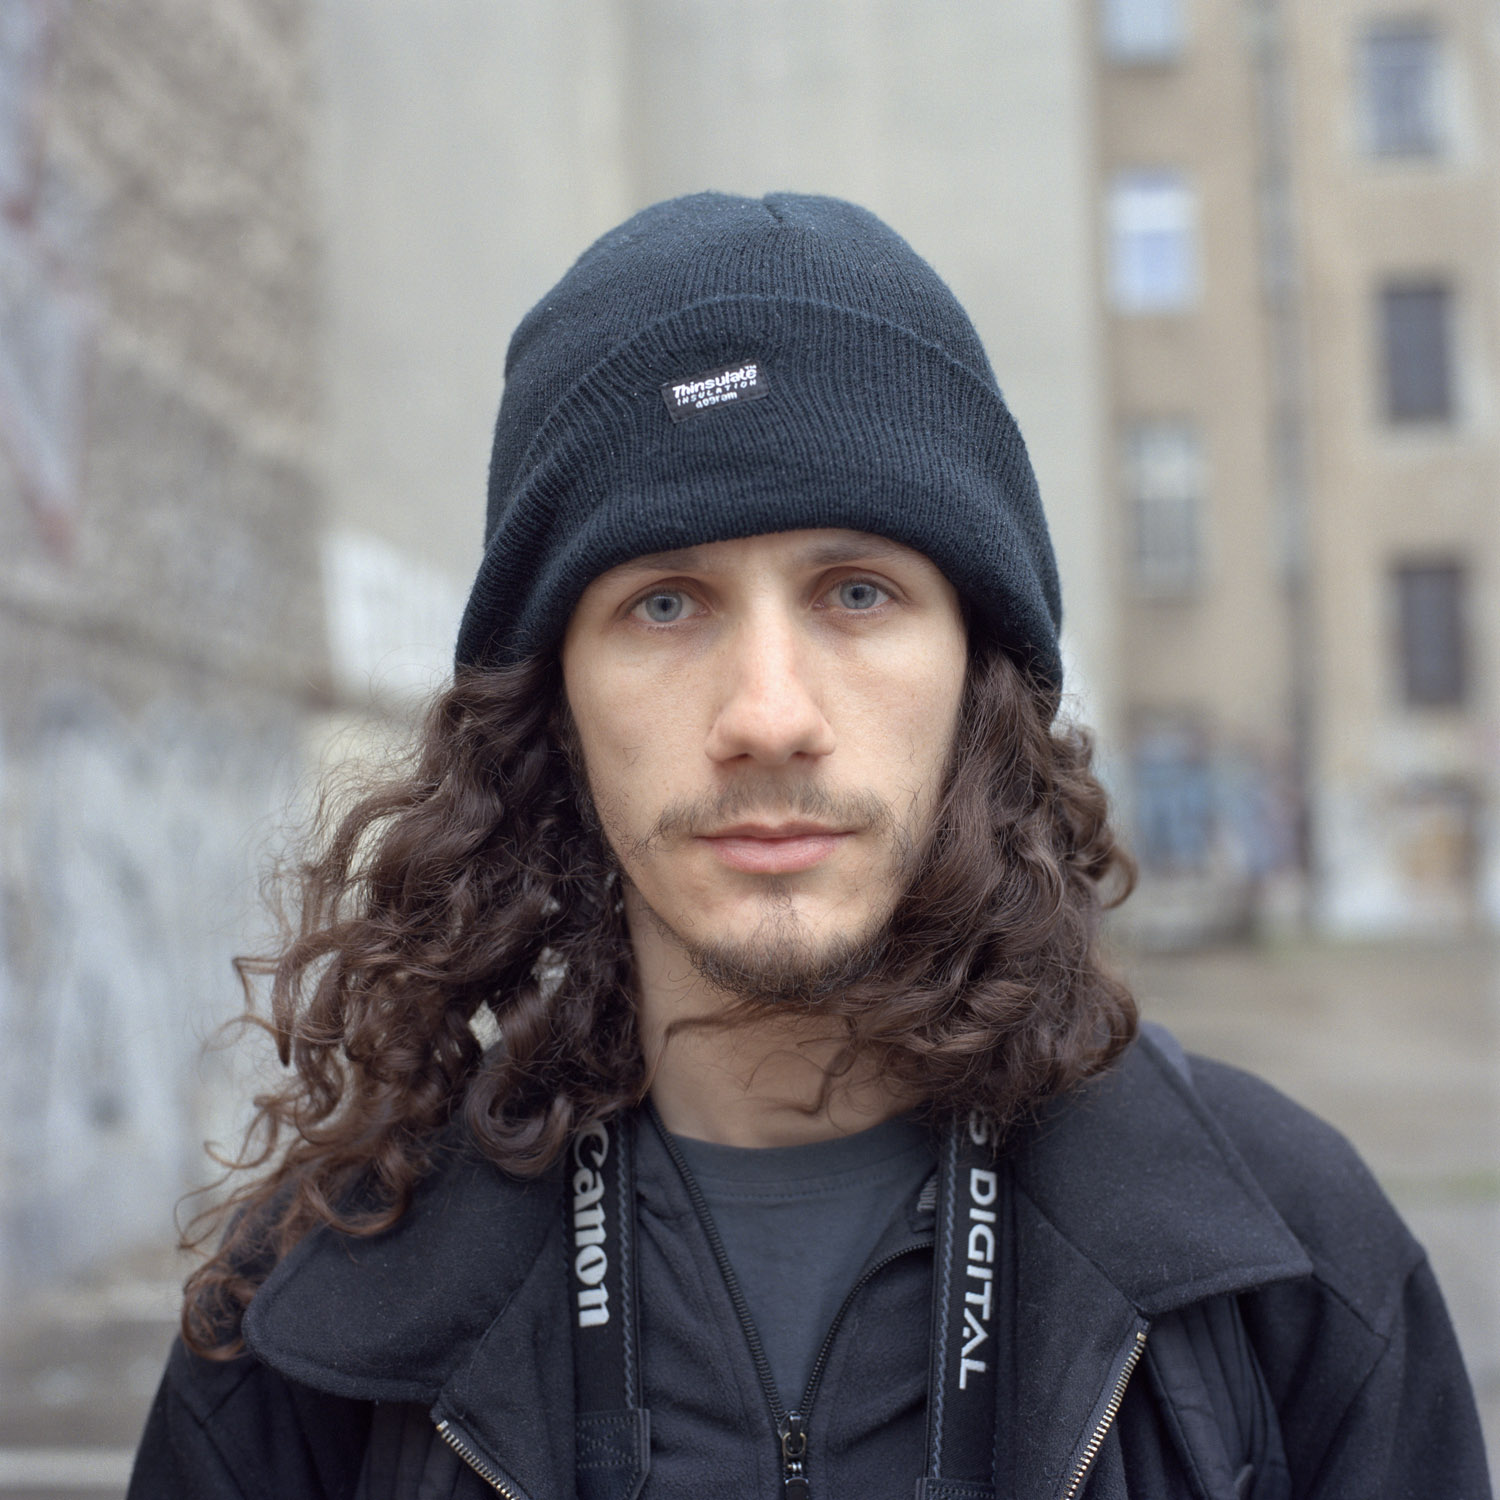 Milo, 2008, from Berlin Project by Abby Storey